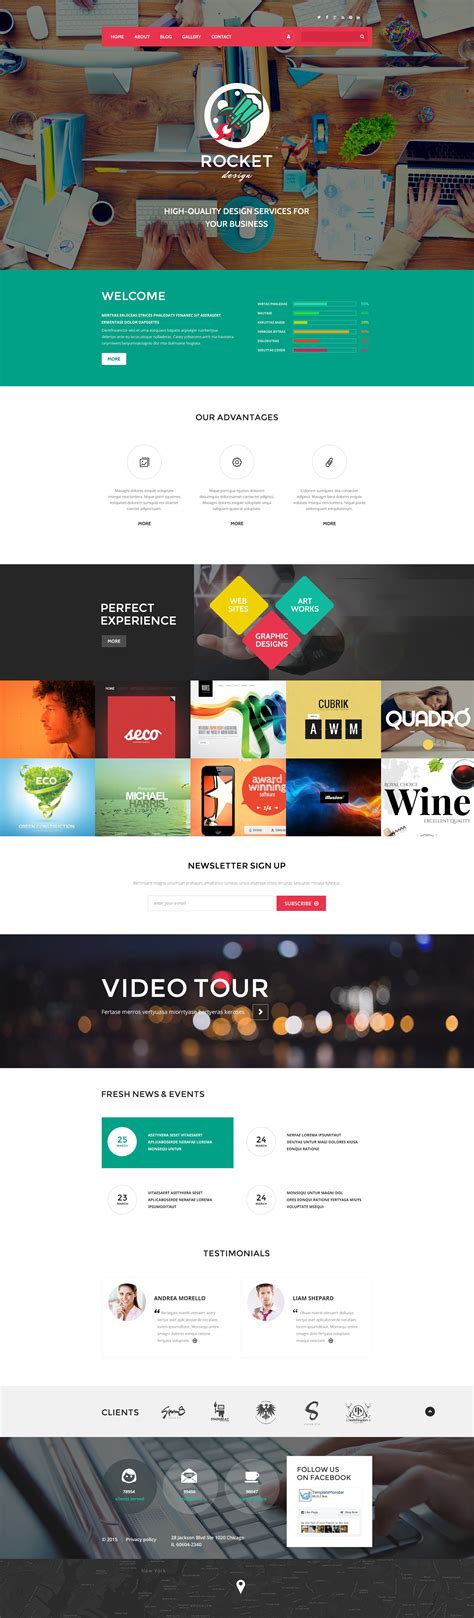 drupal different templates for different pages download drupal default page template free filecloudzip